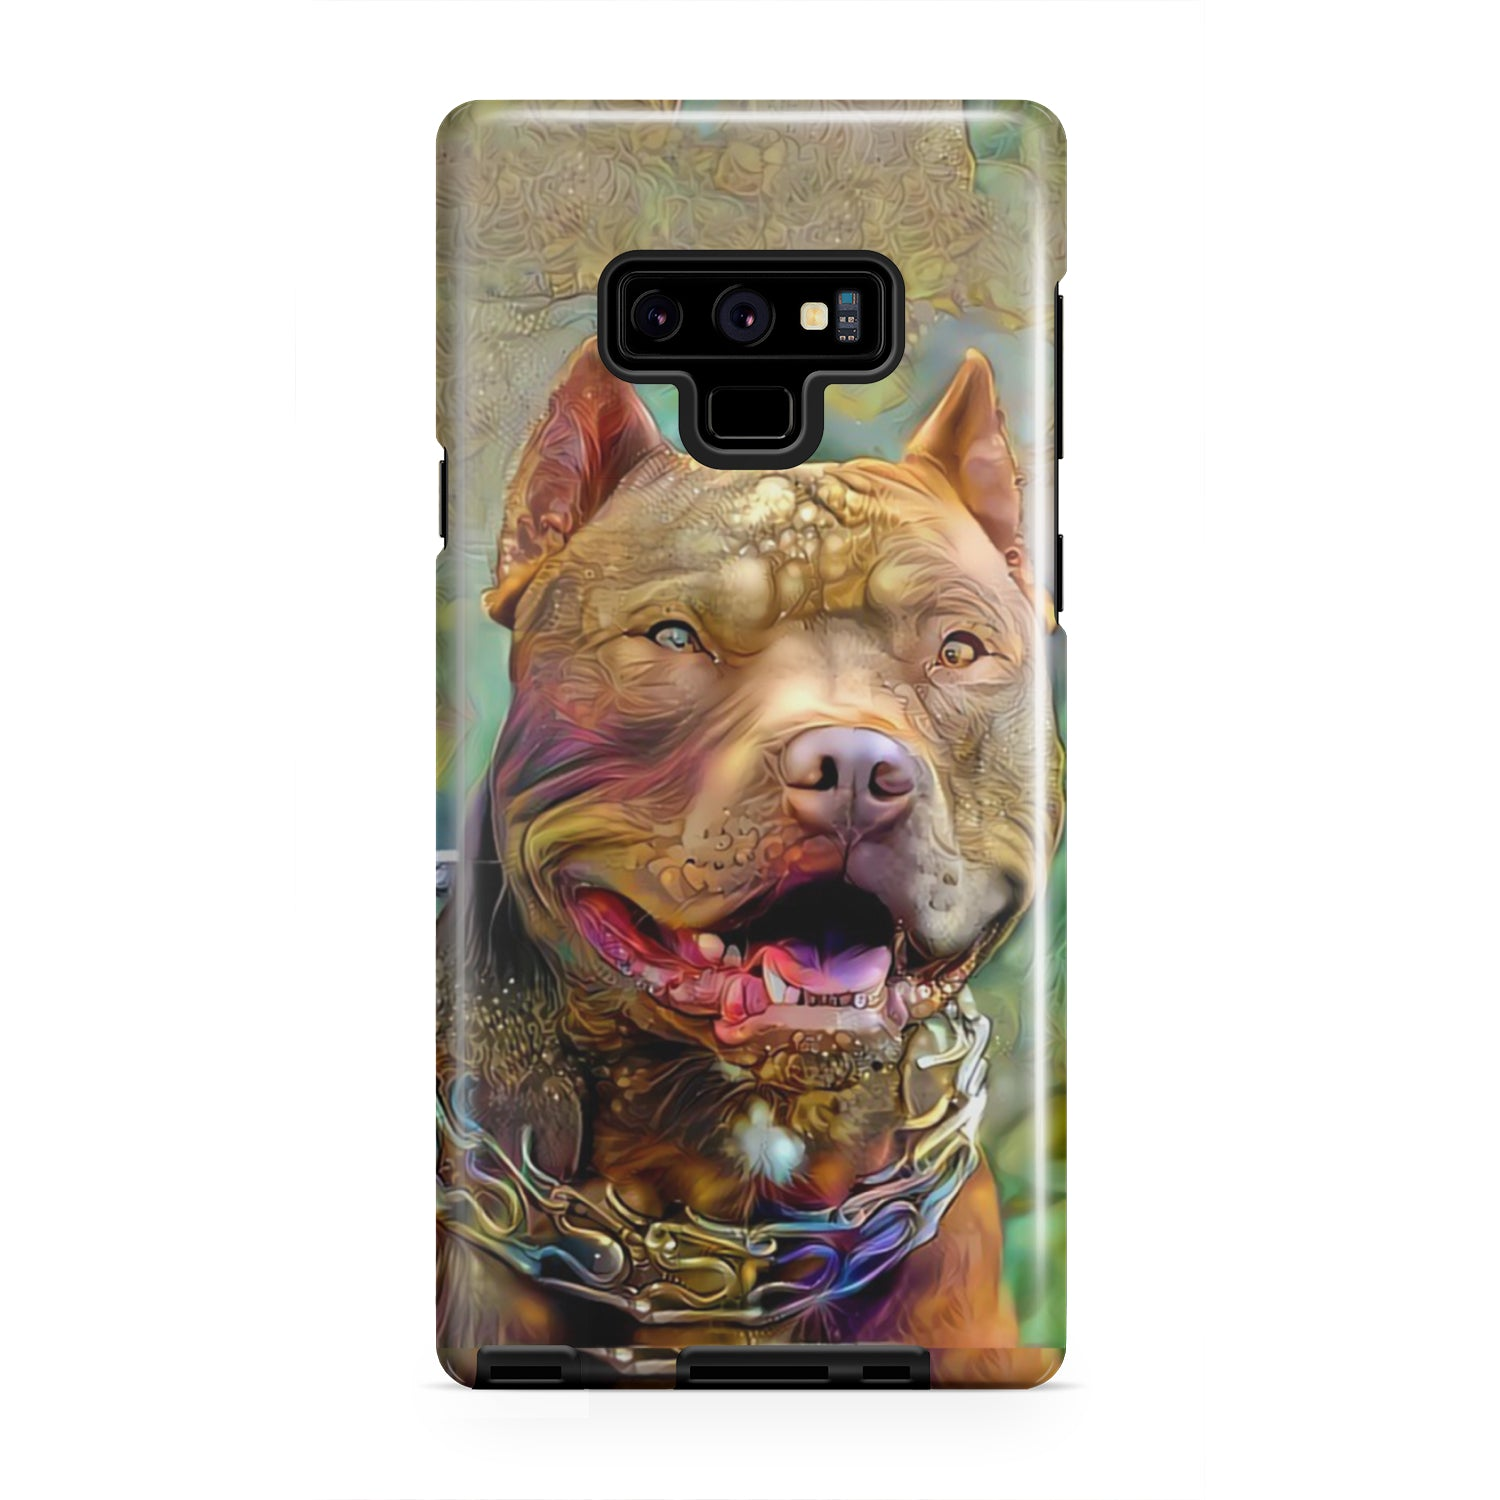 Custom Legend Graffiti Pet Phone Case | Memorial Pet Portrait Gift